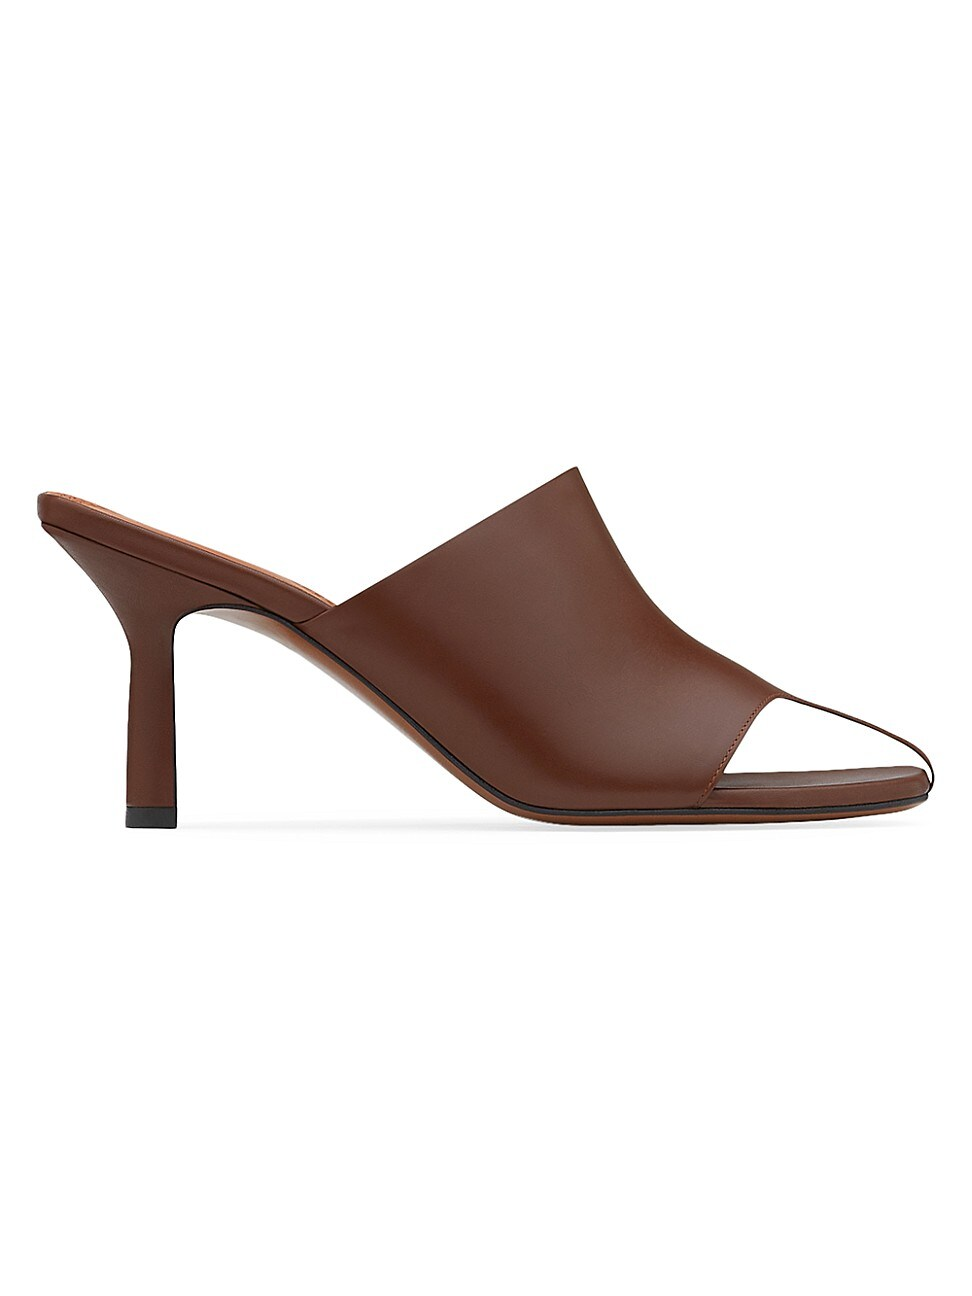 Neous WOMEN'S JUMEL LEATHER MULES